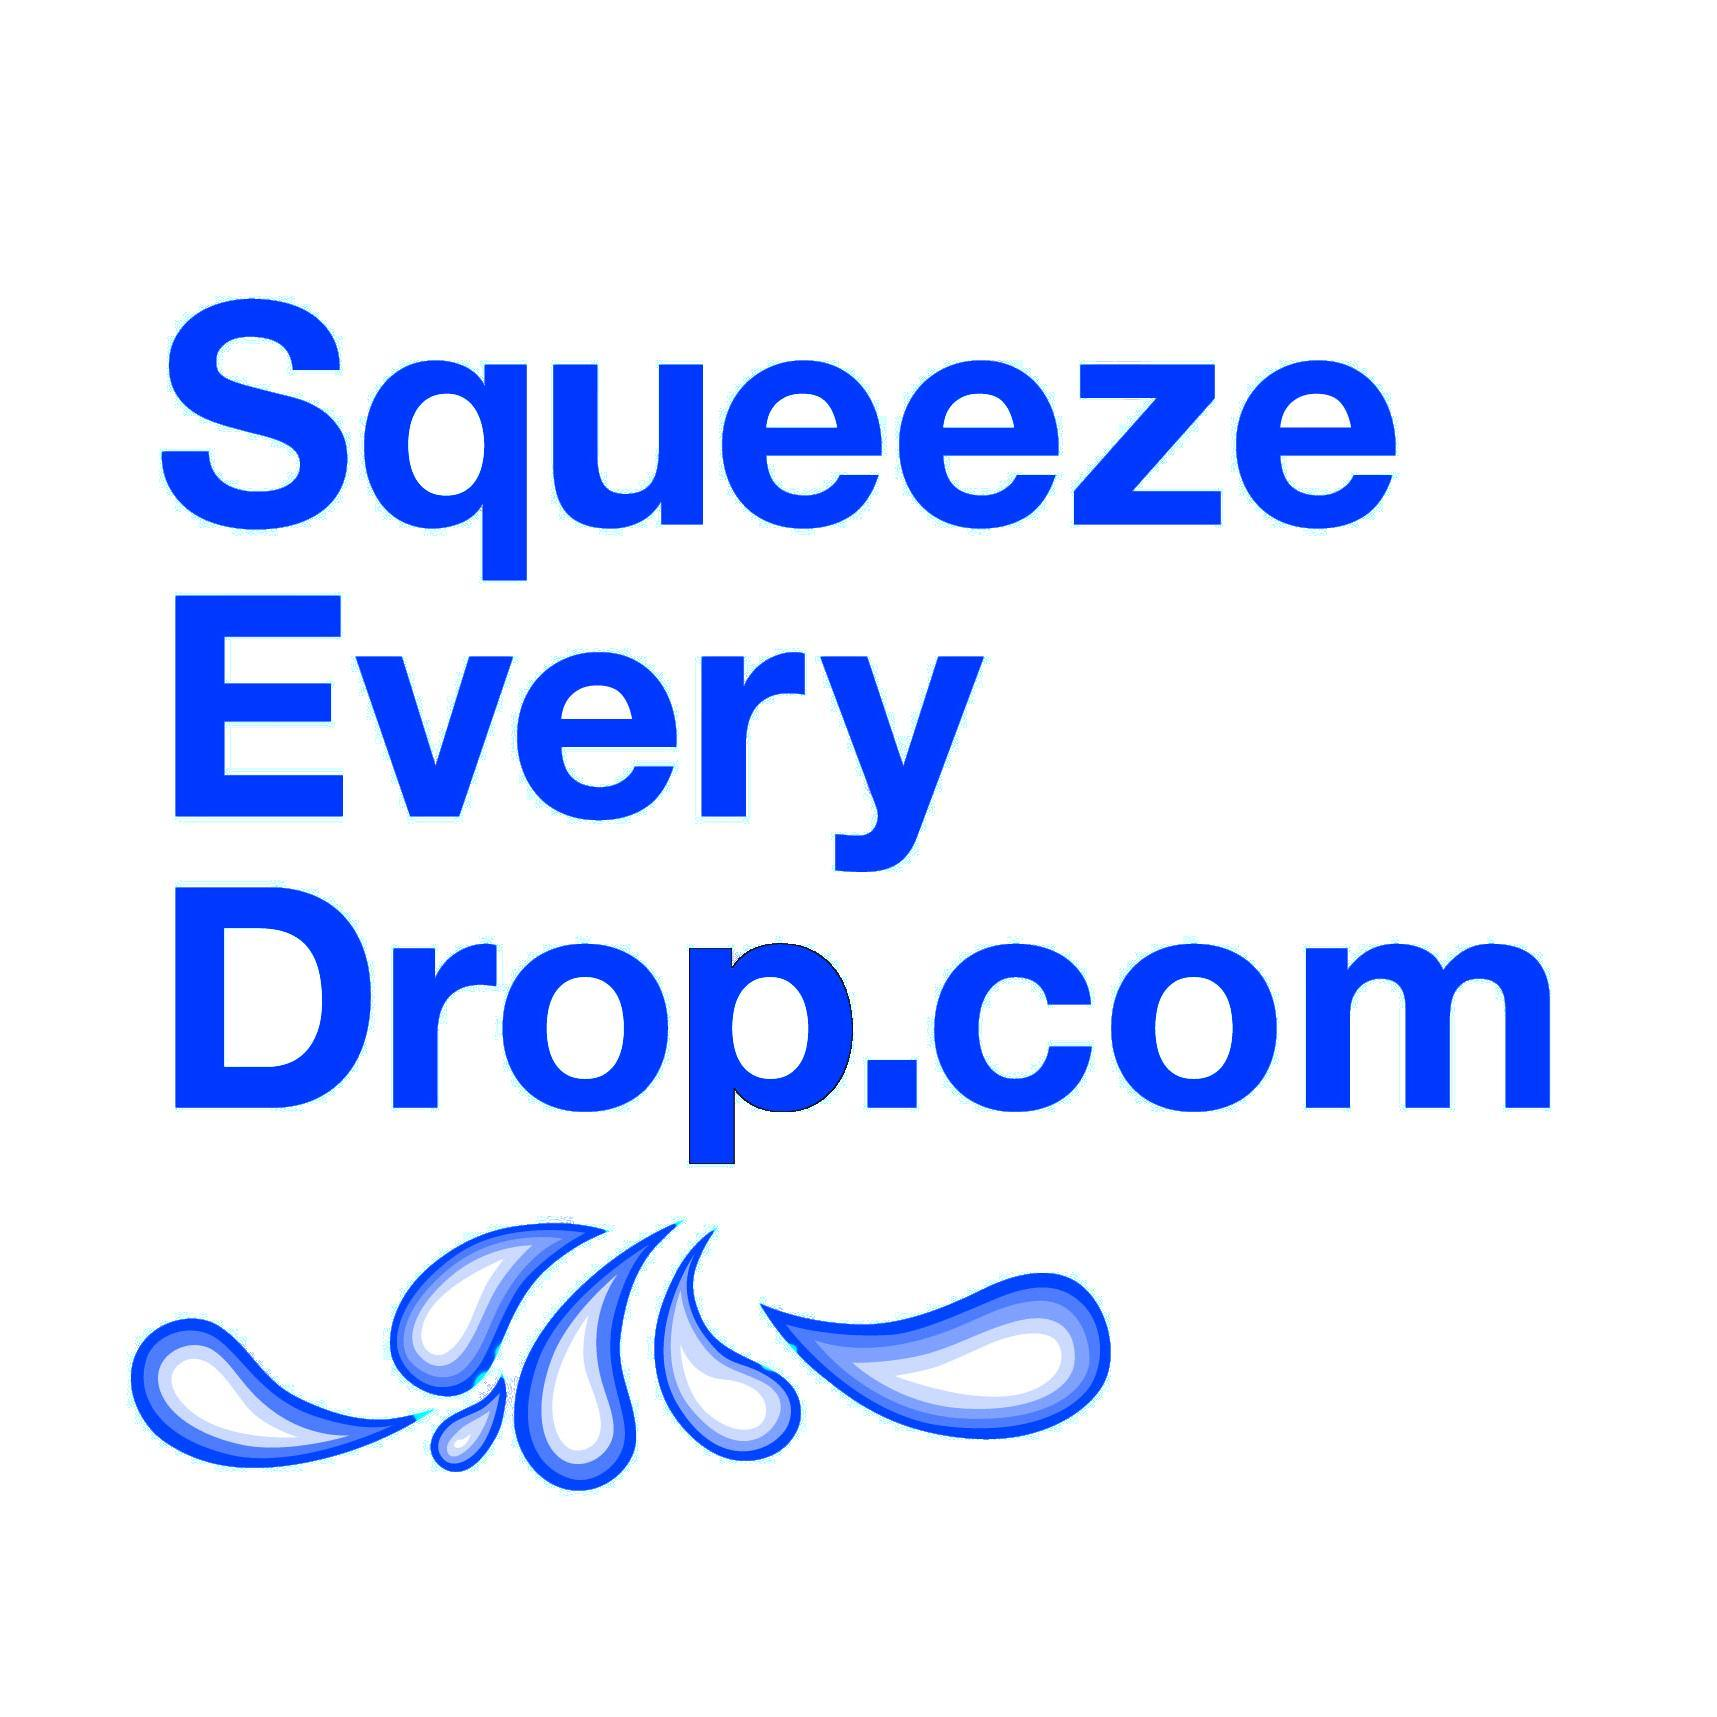 squeeze every drop logo